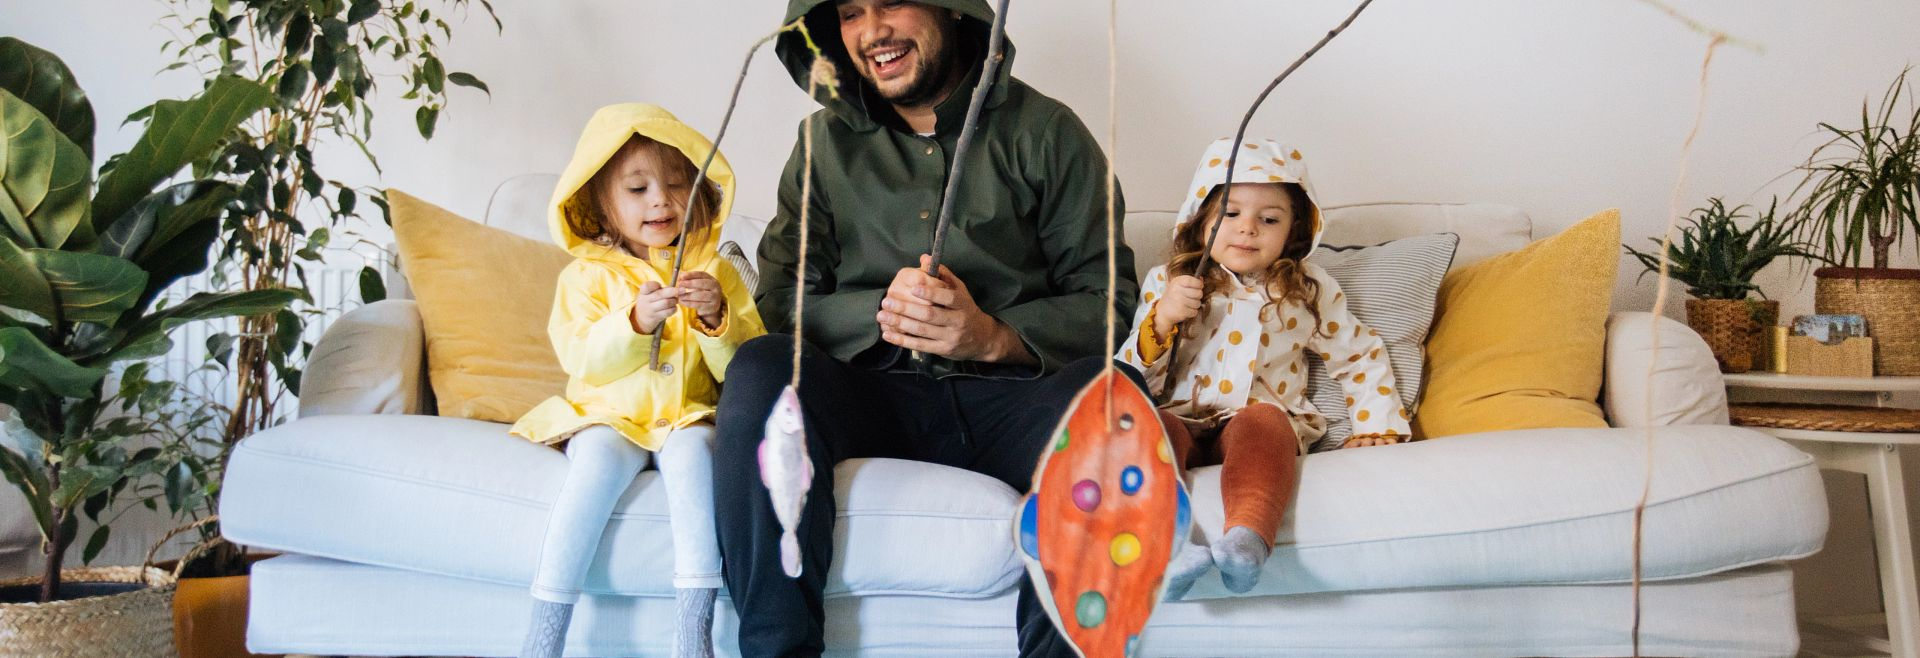 Kids Dad Fishing Indoors Getty Images